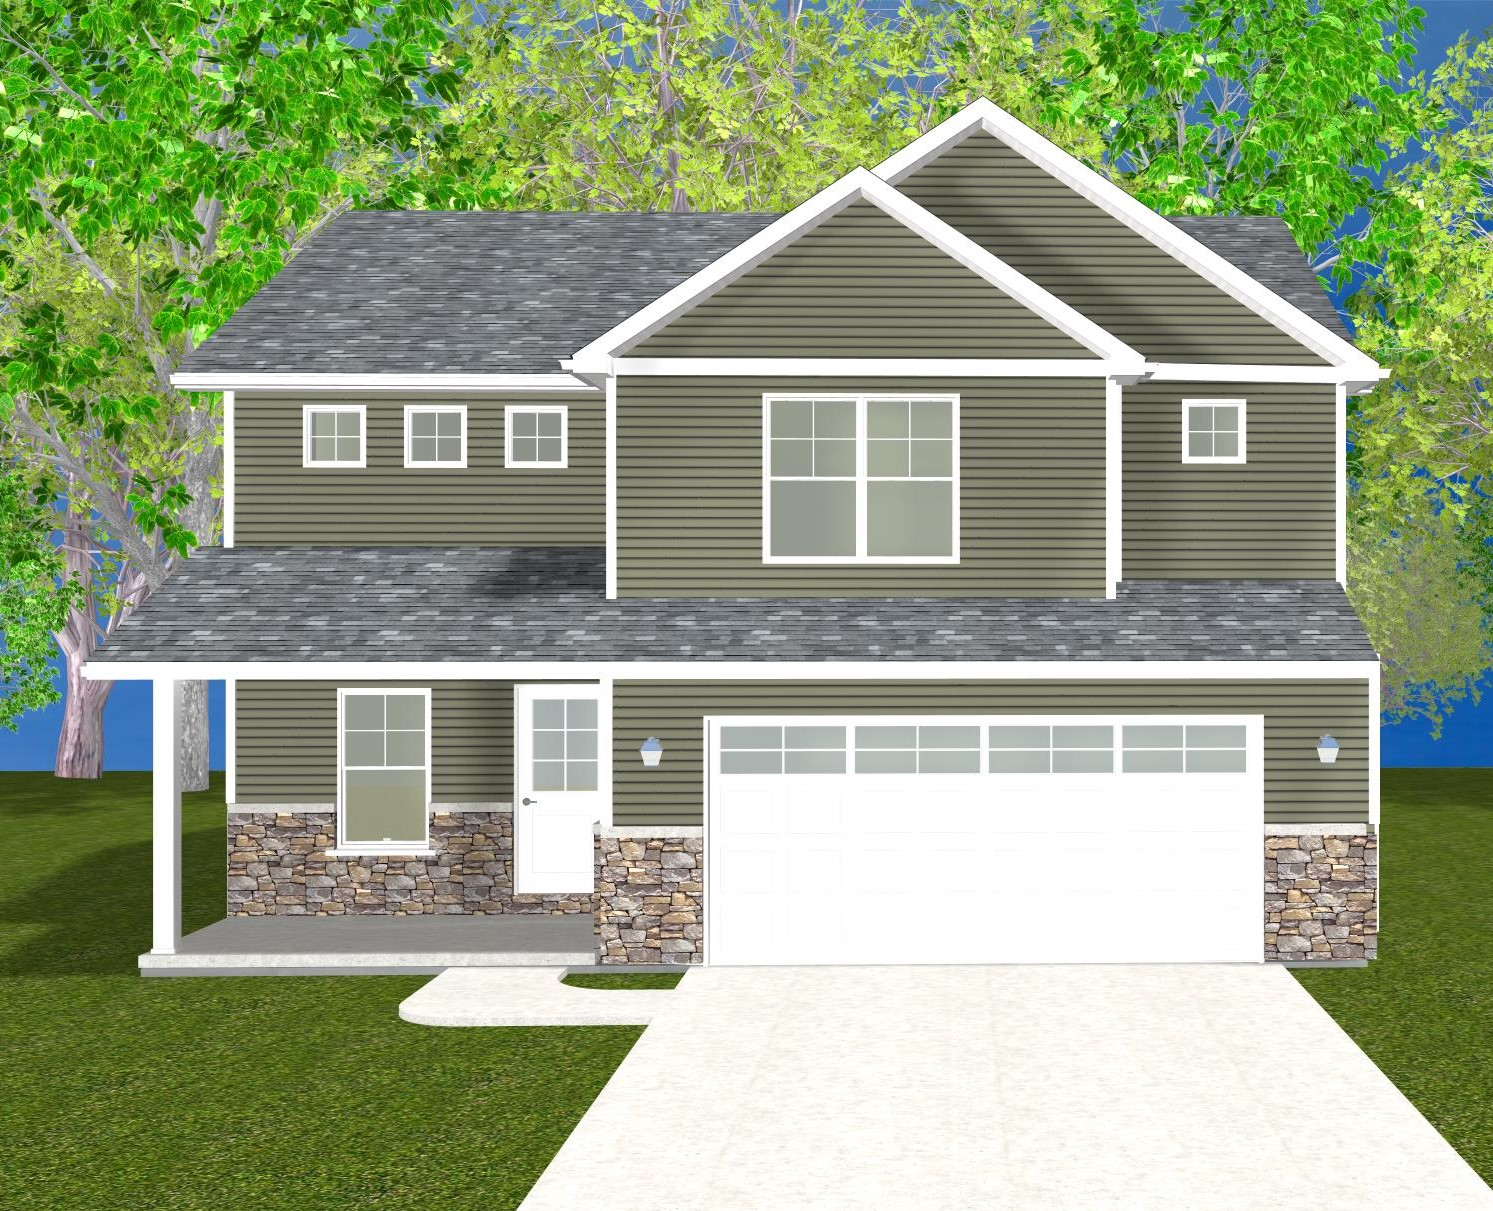 The Amelia Rose – Starting at $297,900 with Standard Lot